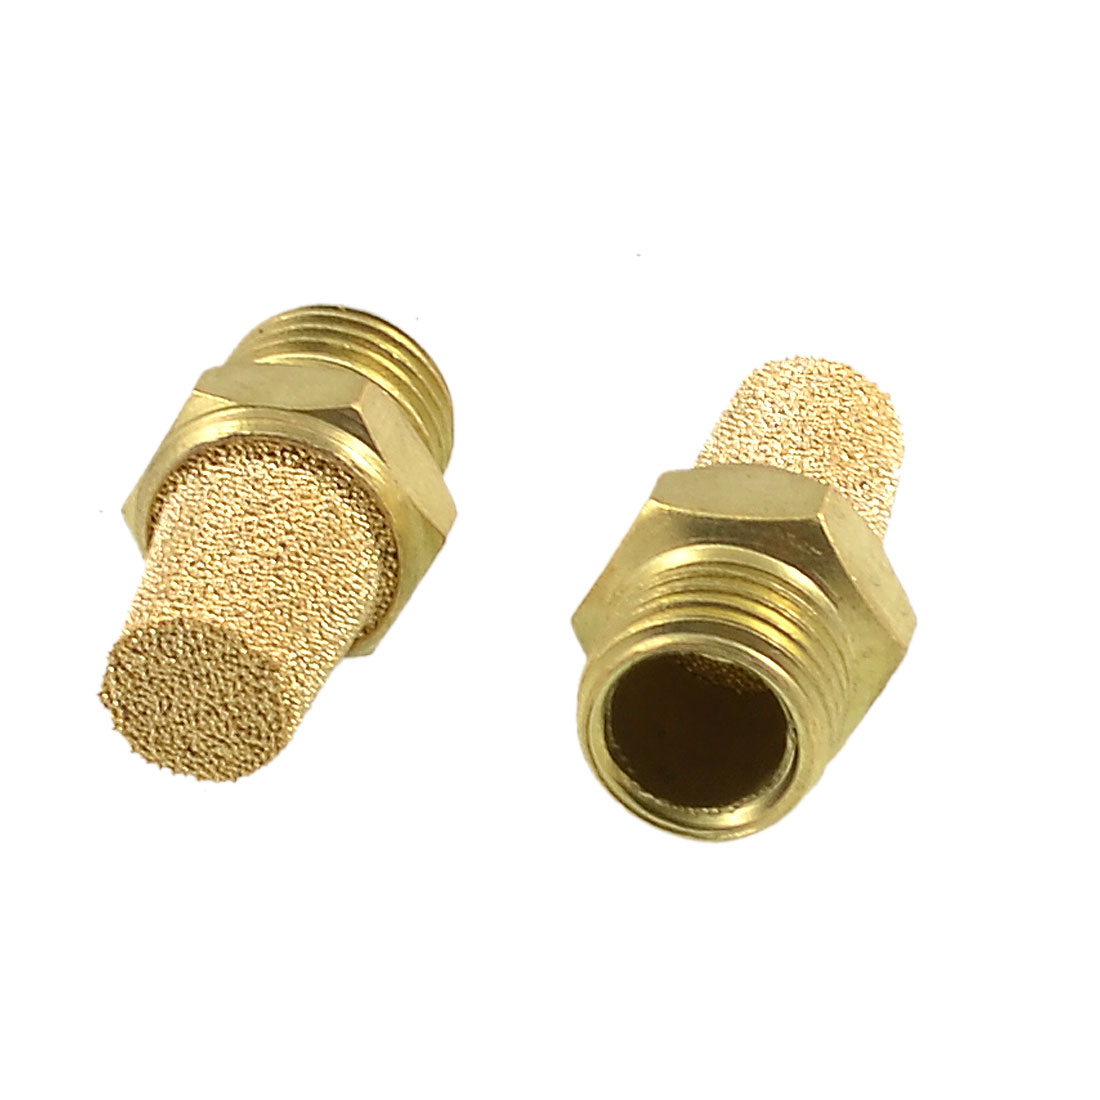 "2 x 1/4"" PT Thread Sintered Pneumatic Air Exhaust Silencer Muffler"